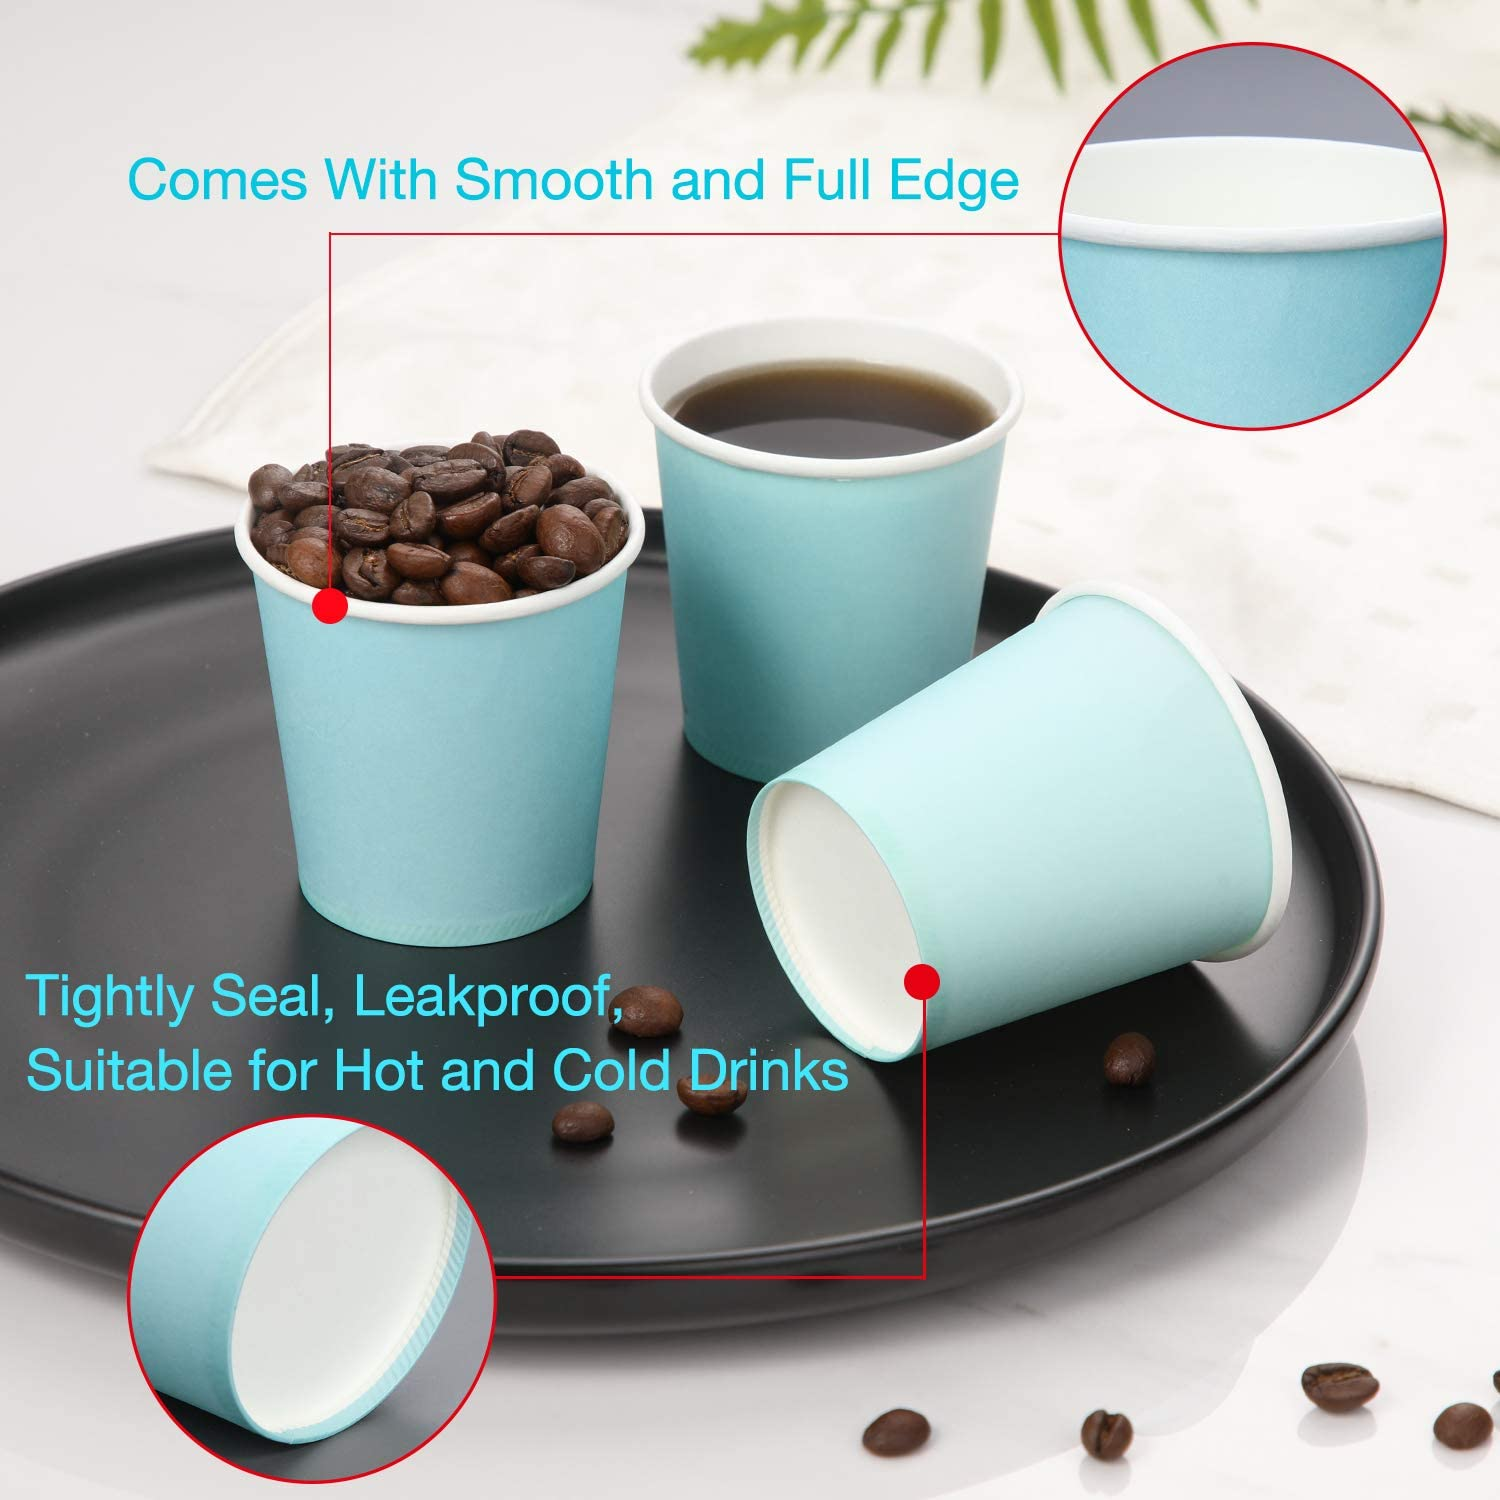 and Events Paper Cups for Party Picnic Sky Blue Mouthwash Cups Disposable Bathroom Cups Espresso Cups Travel 300 Pack BBQ 3 oz Paper Cups